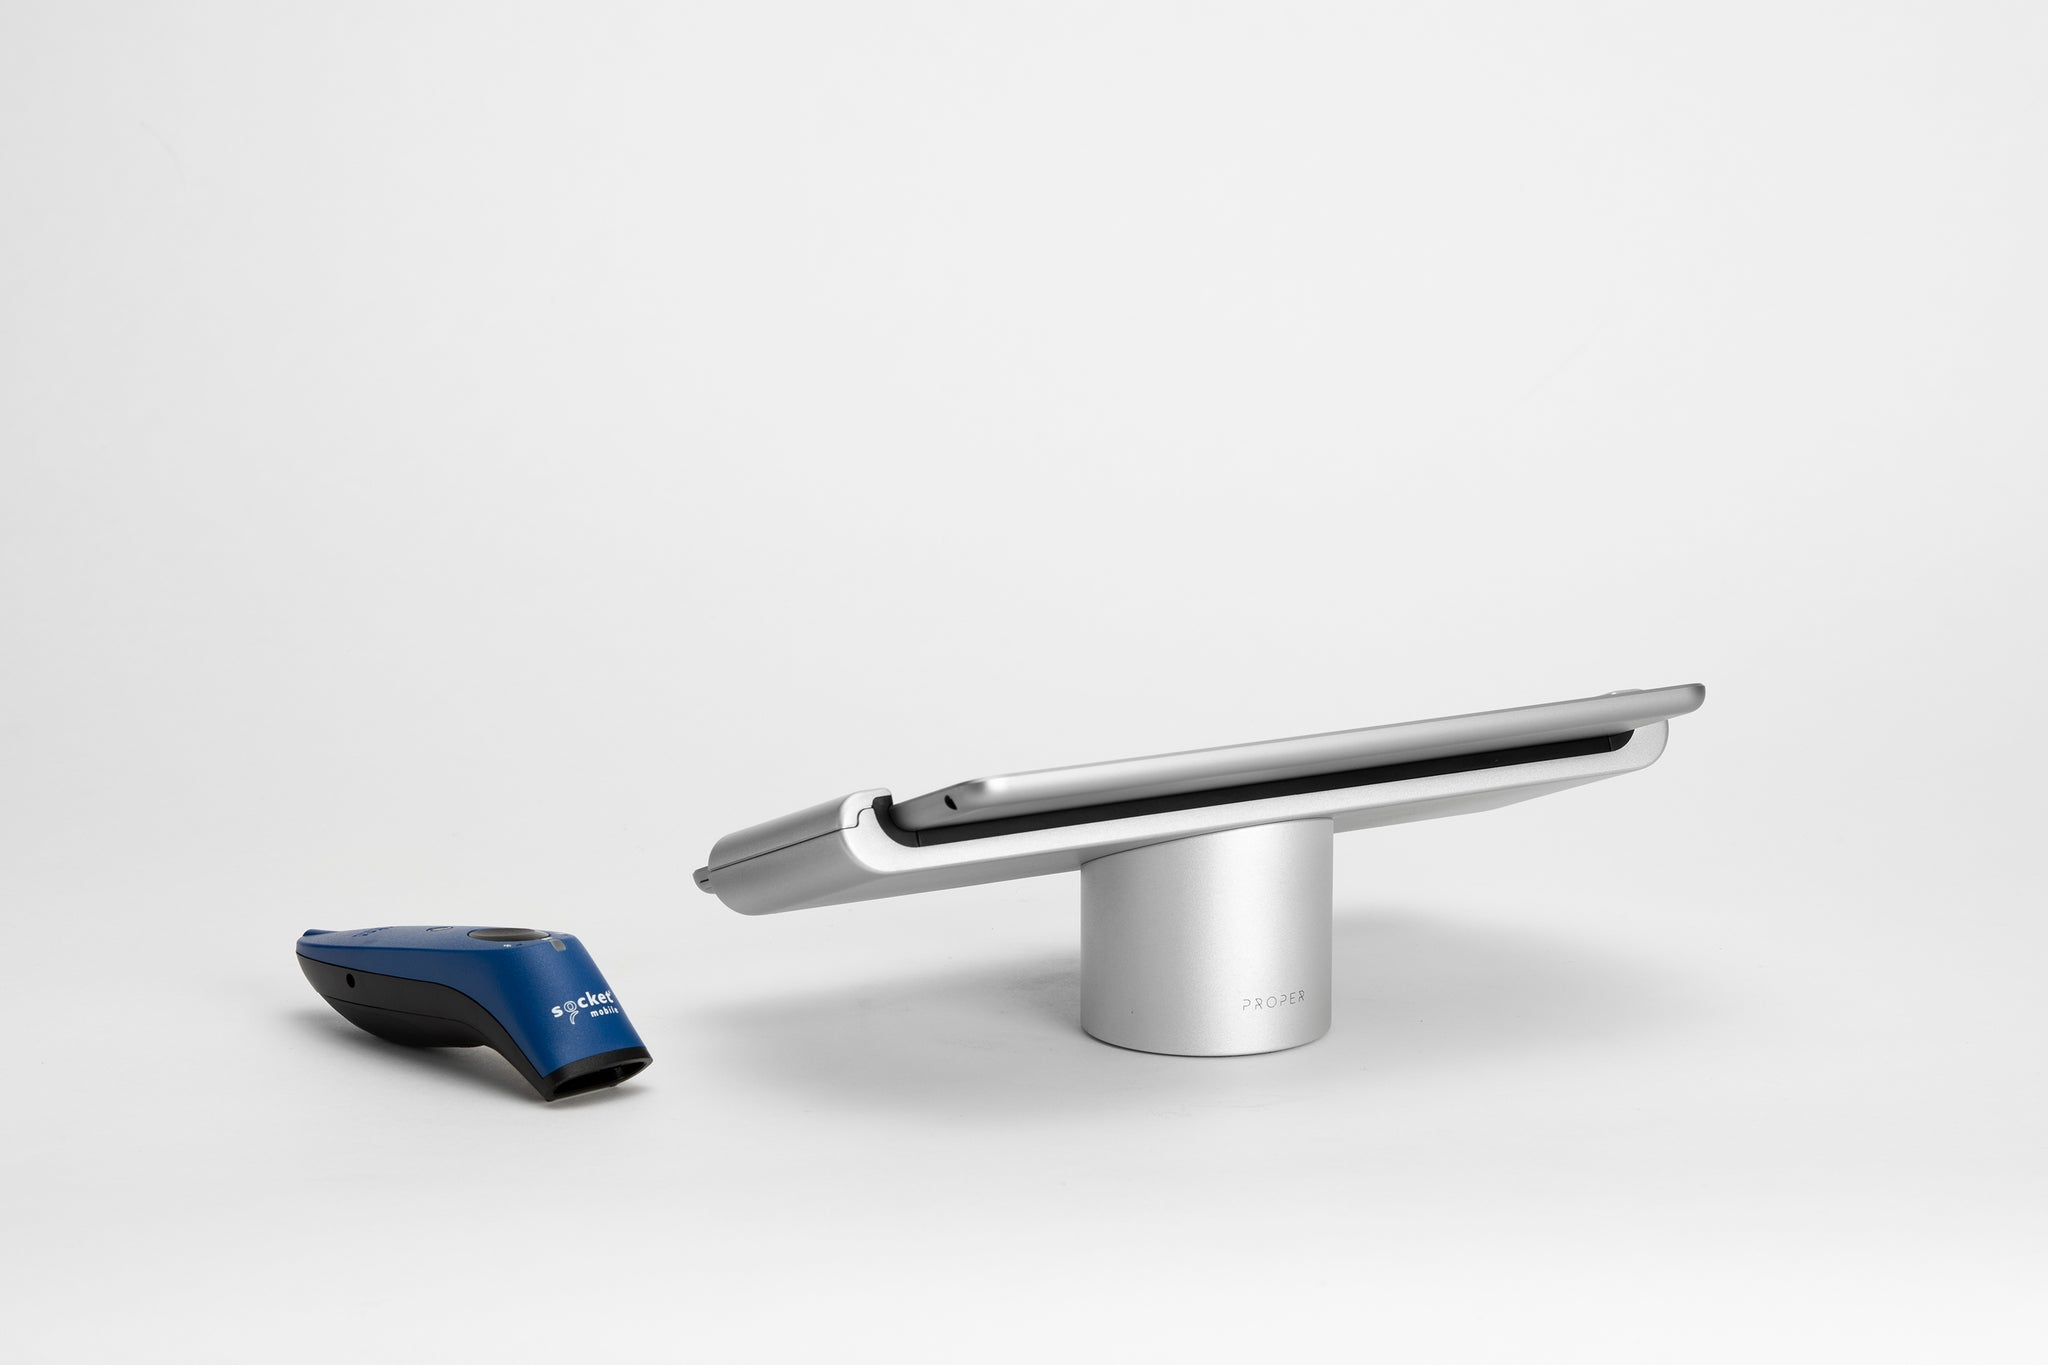 ipad point of sale stand with barcode scanner